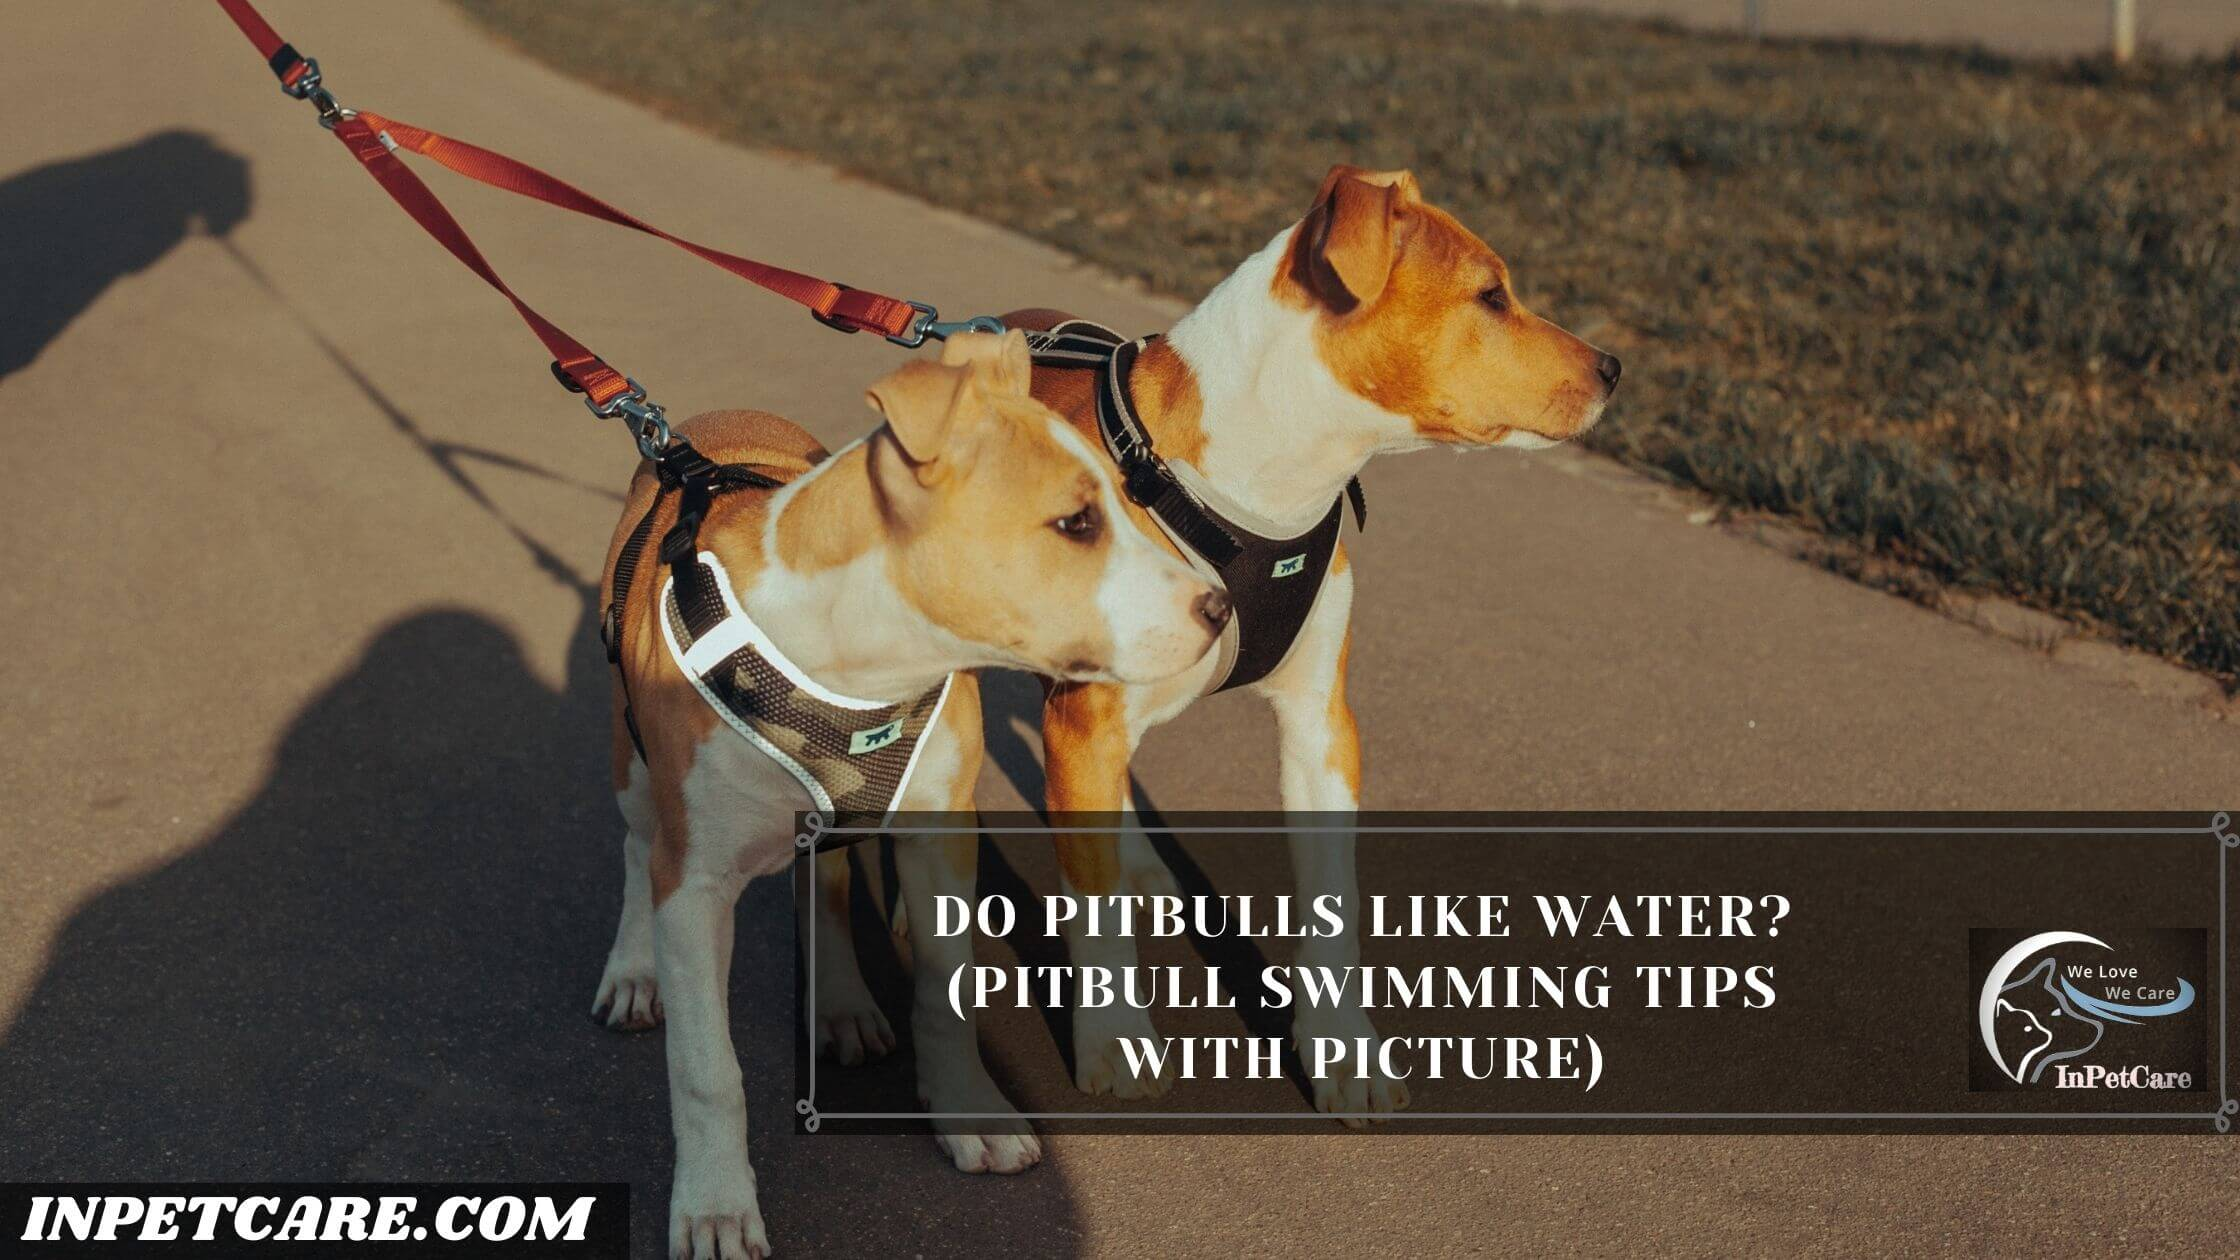 Do Pitbulls Like Water?